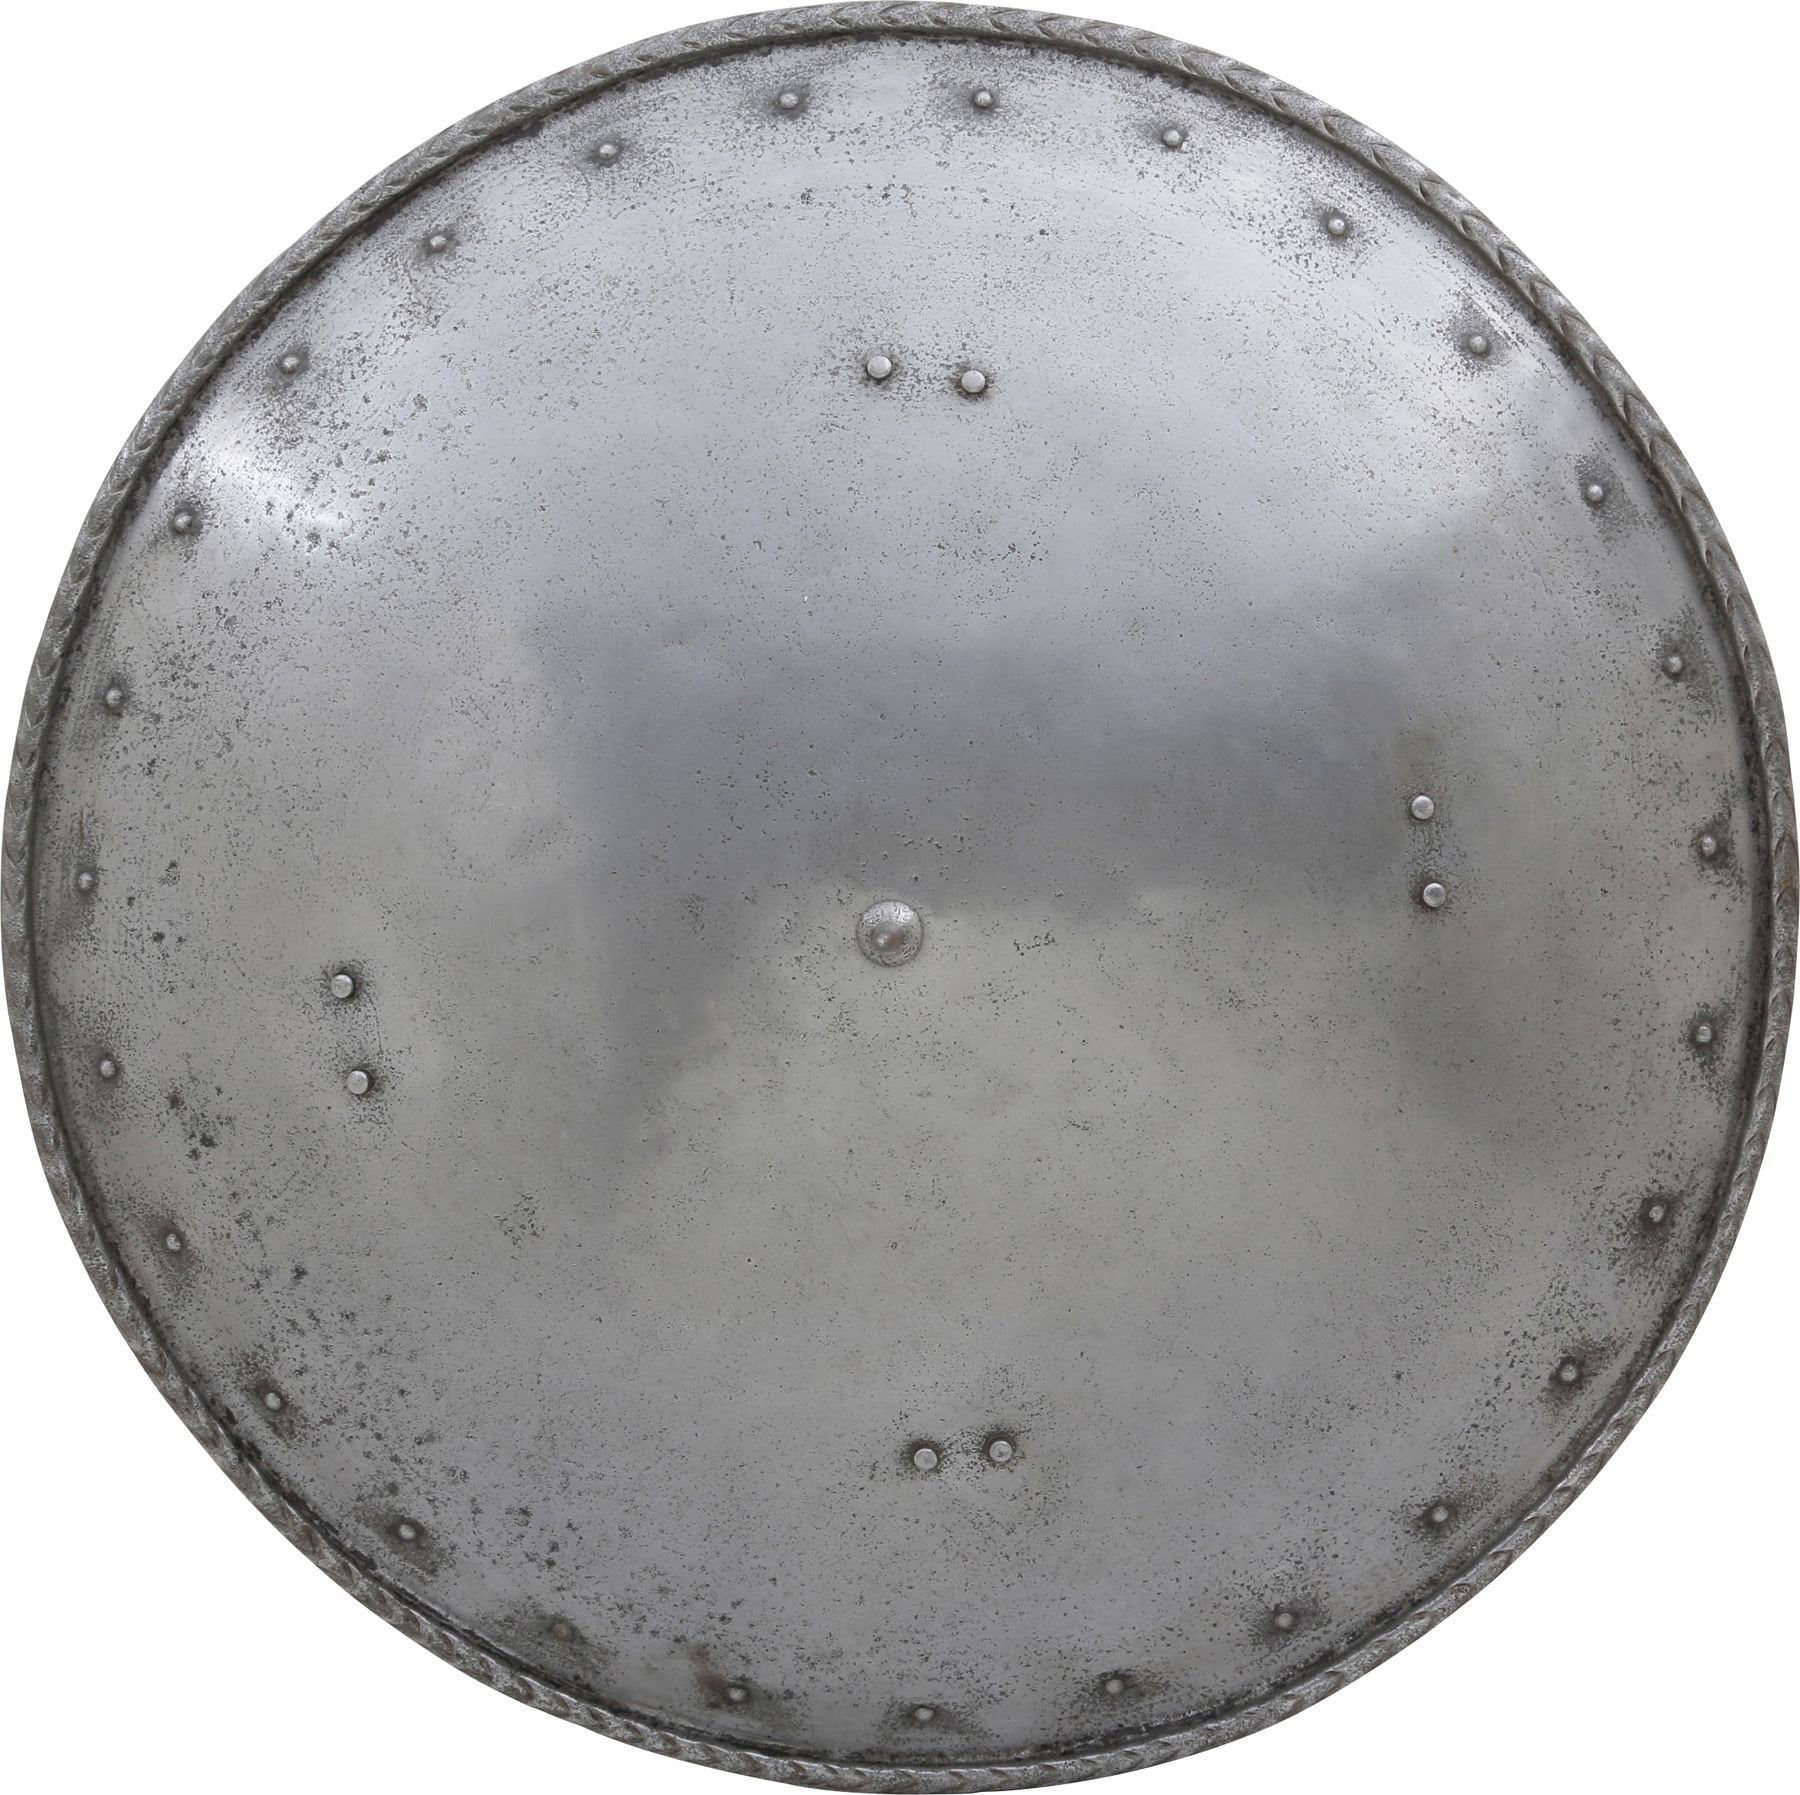 European Iron Shield C.1580 - Product